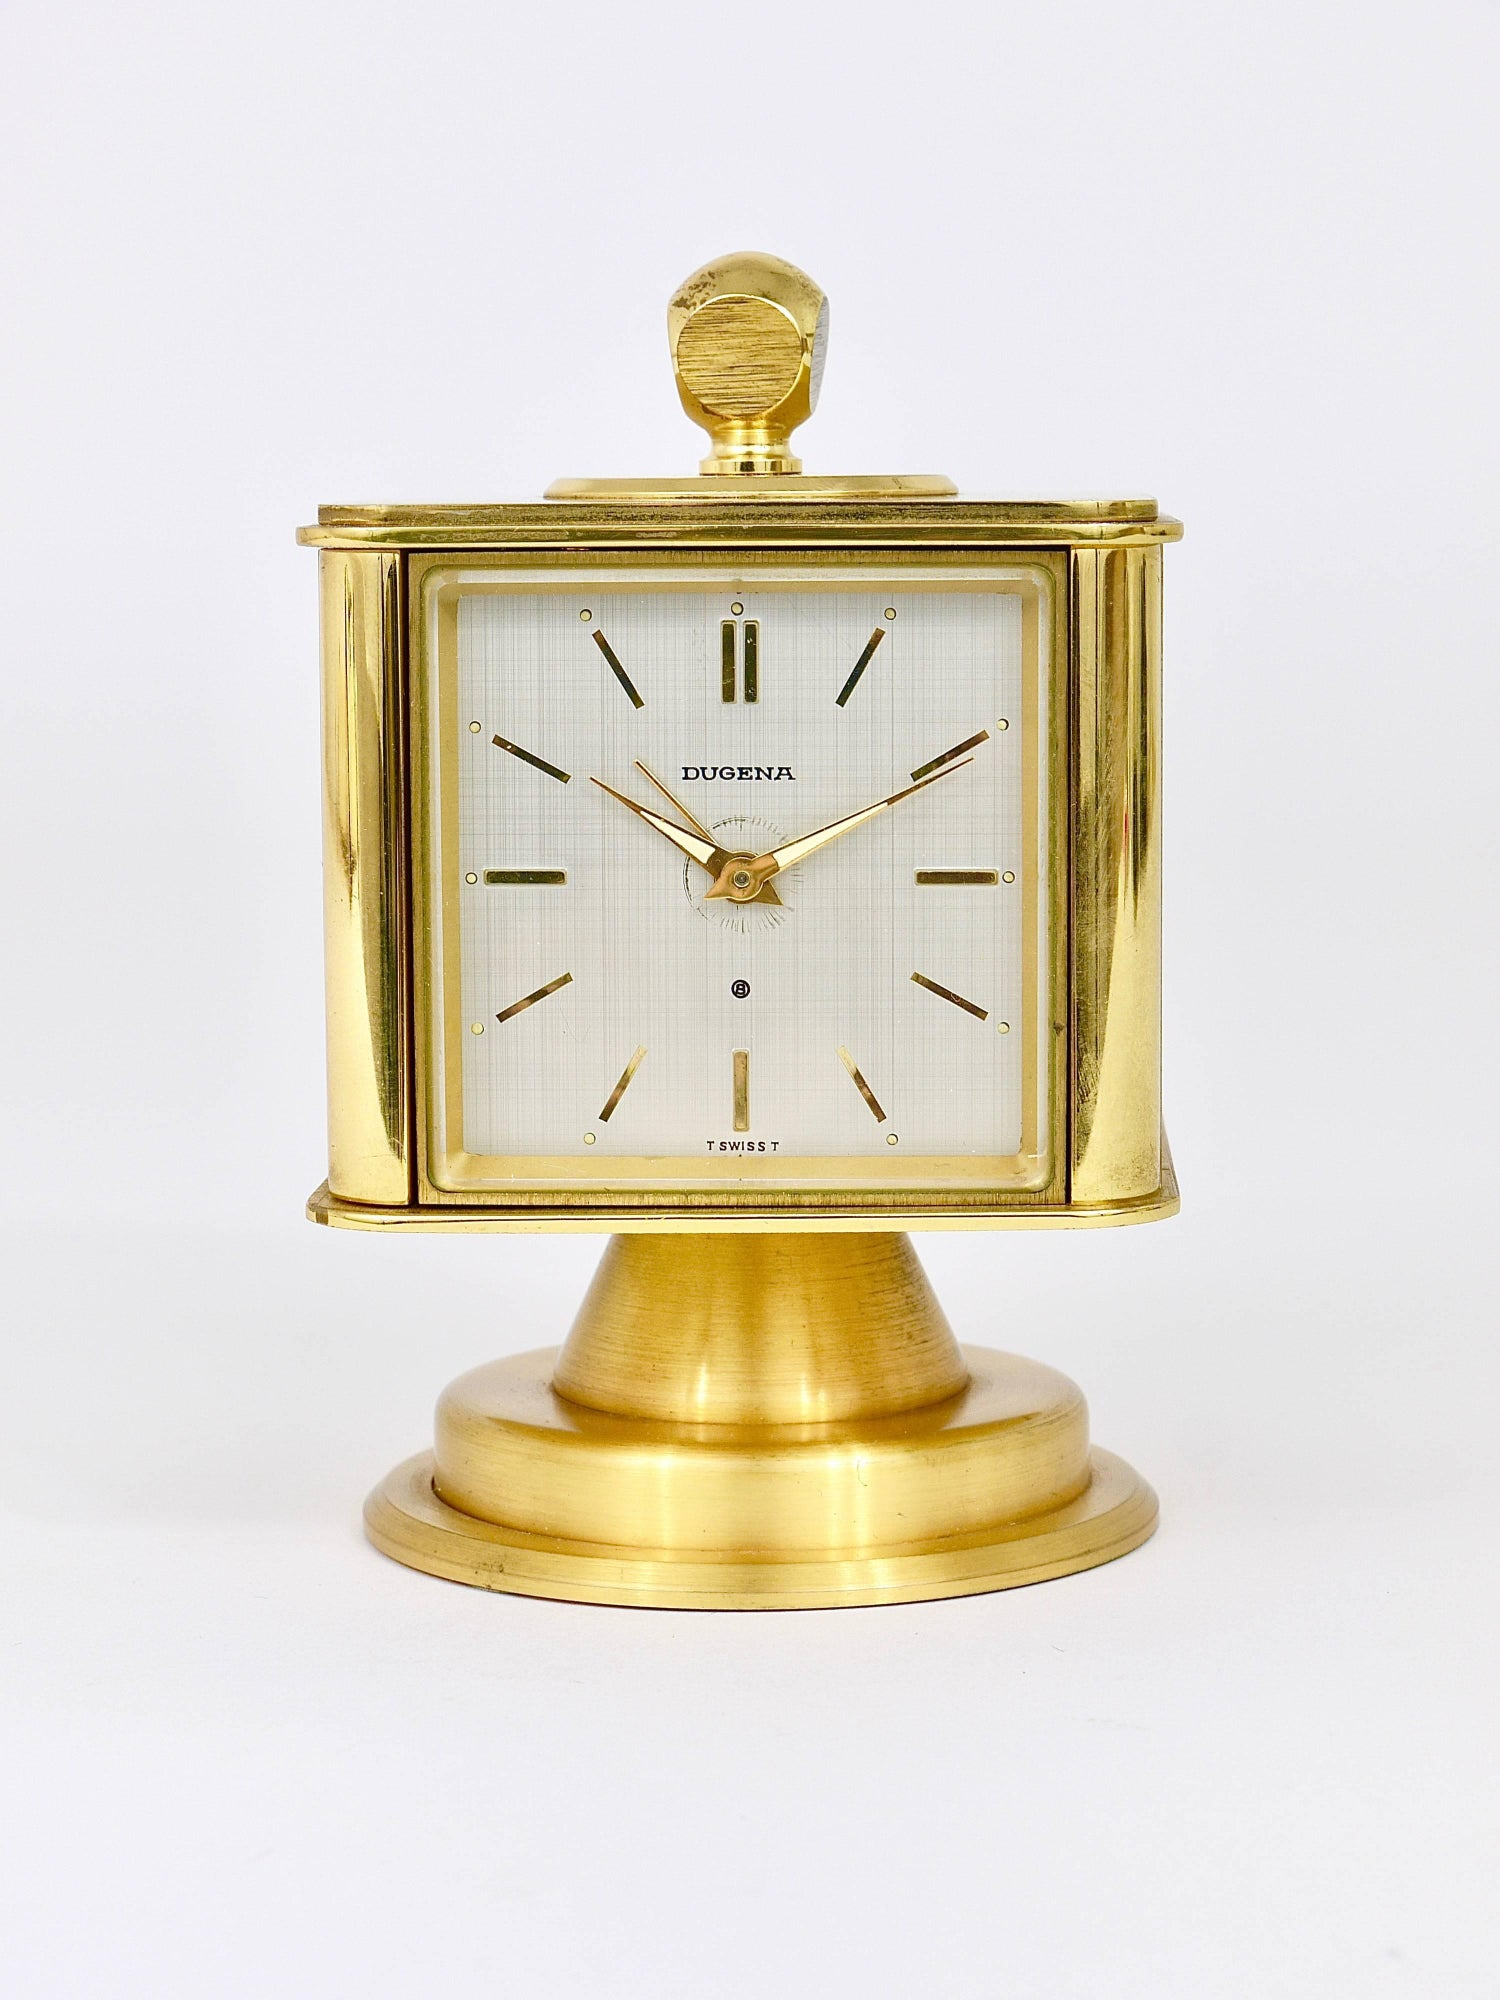 Hollywood Regency Brass Alarm Desk Clock And Weather Station By Dugena Germany For At 1stdibs